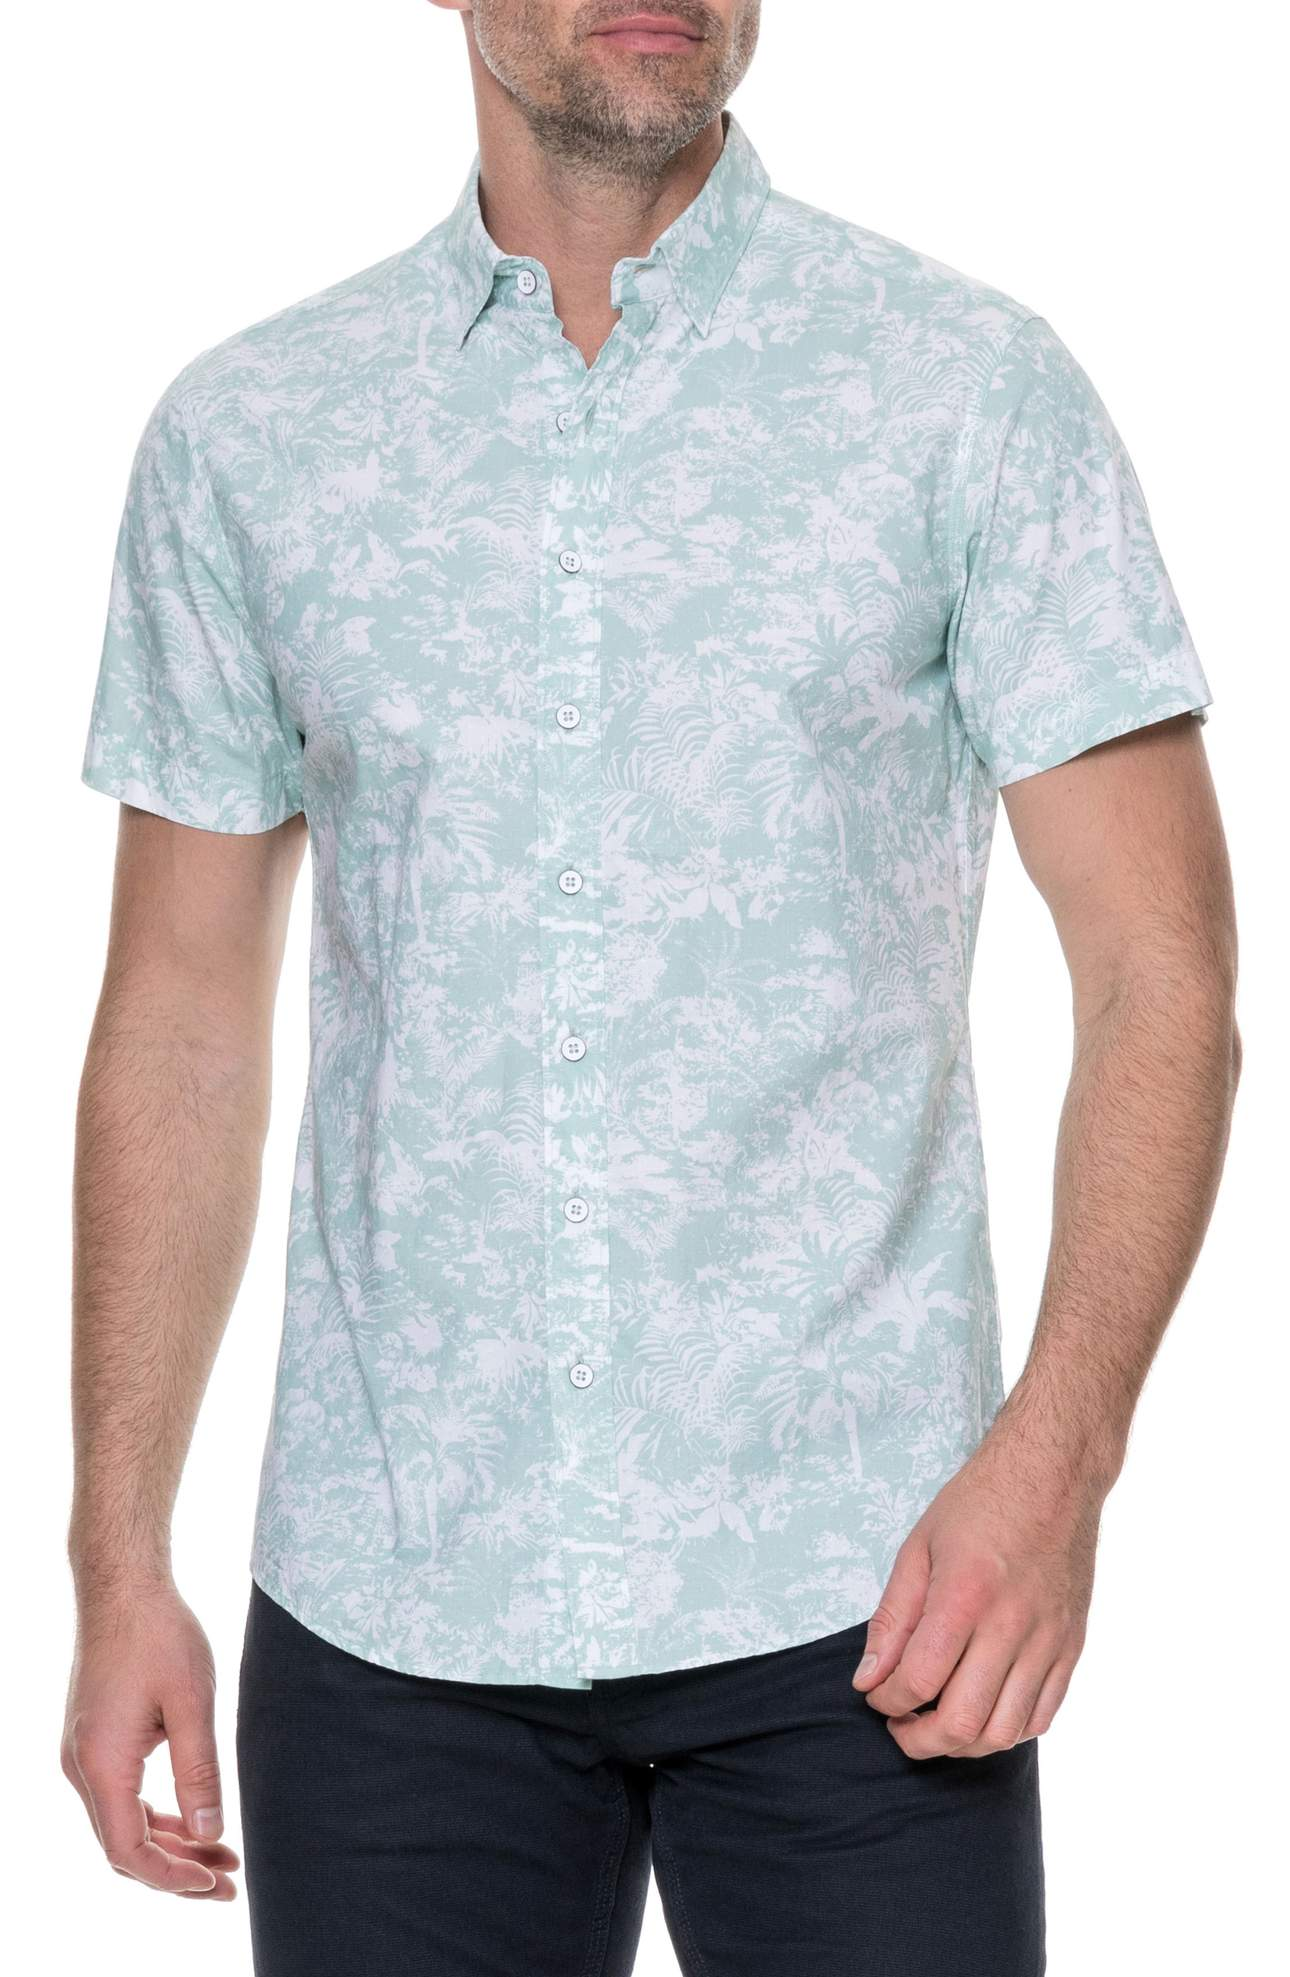 Freshen up your warm-weather look with the understated vintage floral print on a slim-fitting sport shirt tailored from lightweight cotton poplin. (Image: Nordstrom)<p></p>